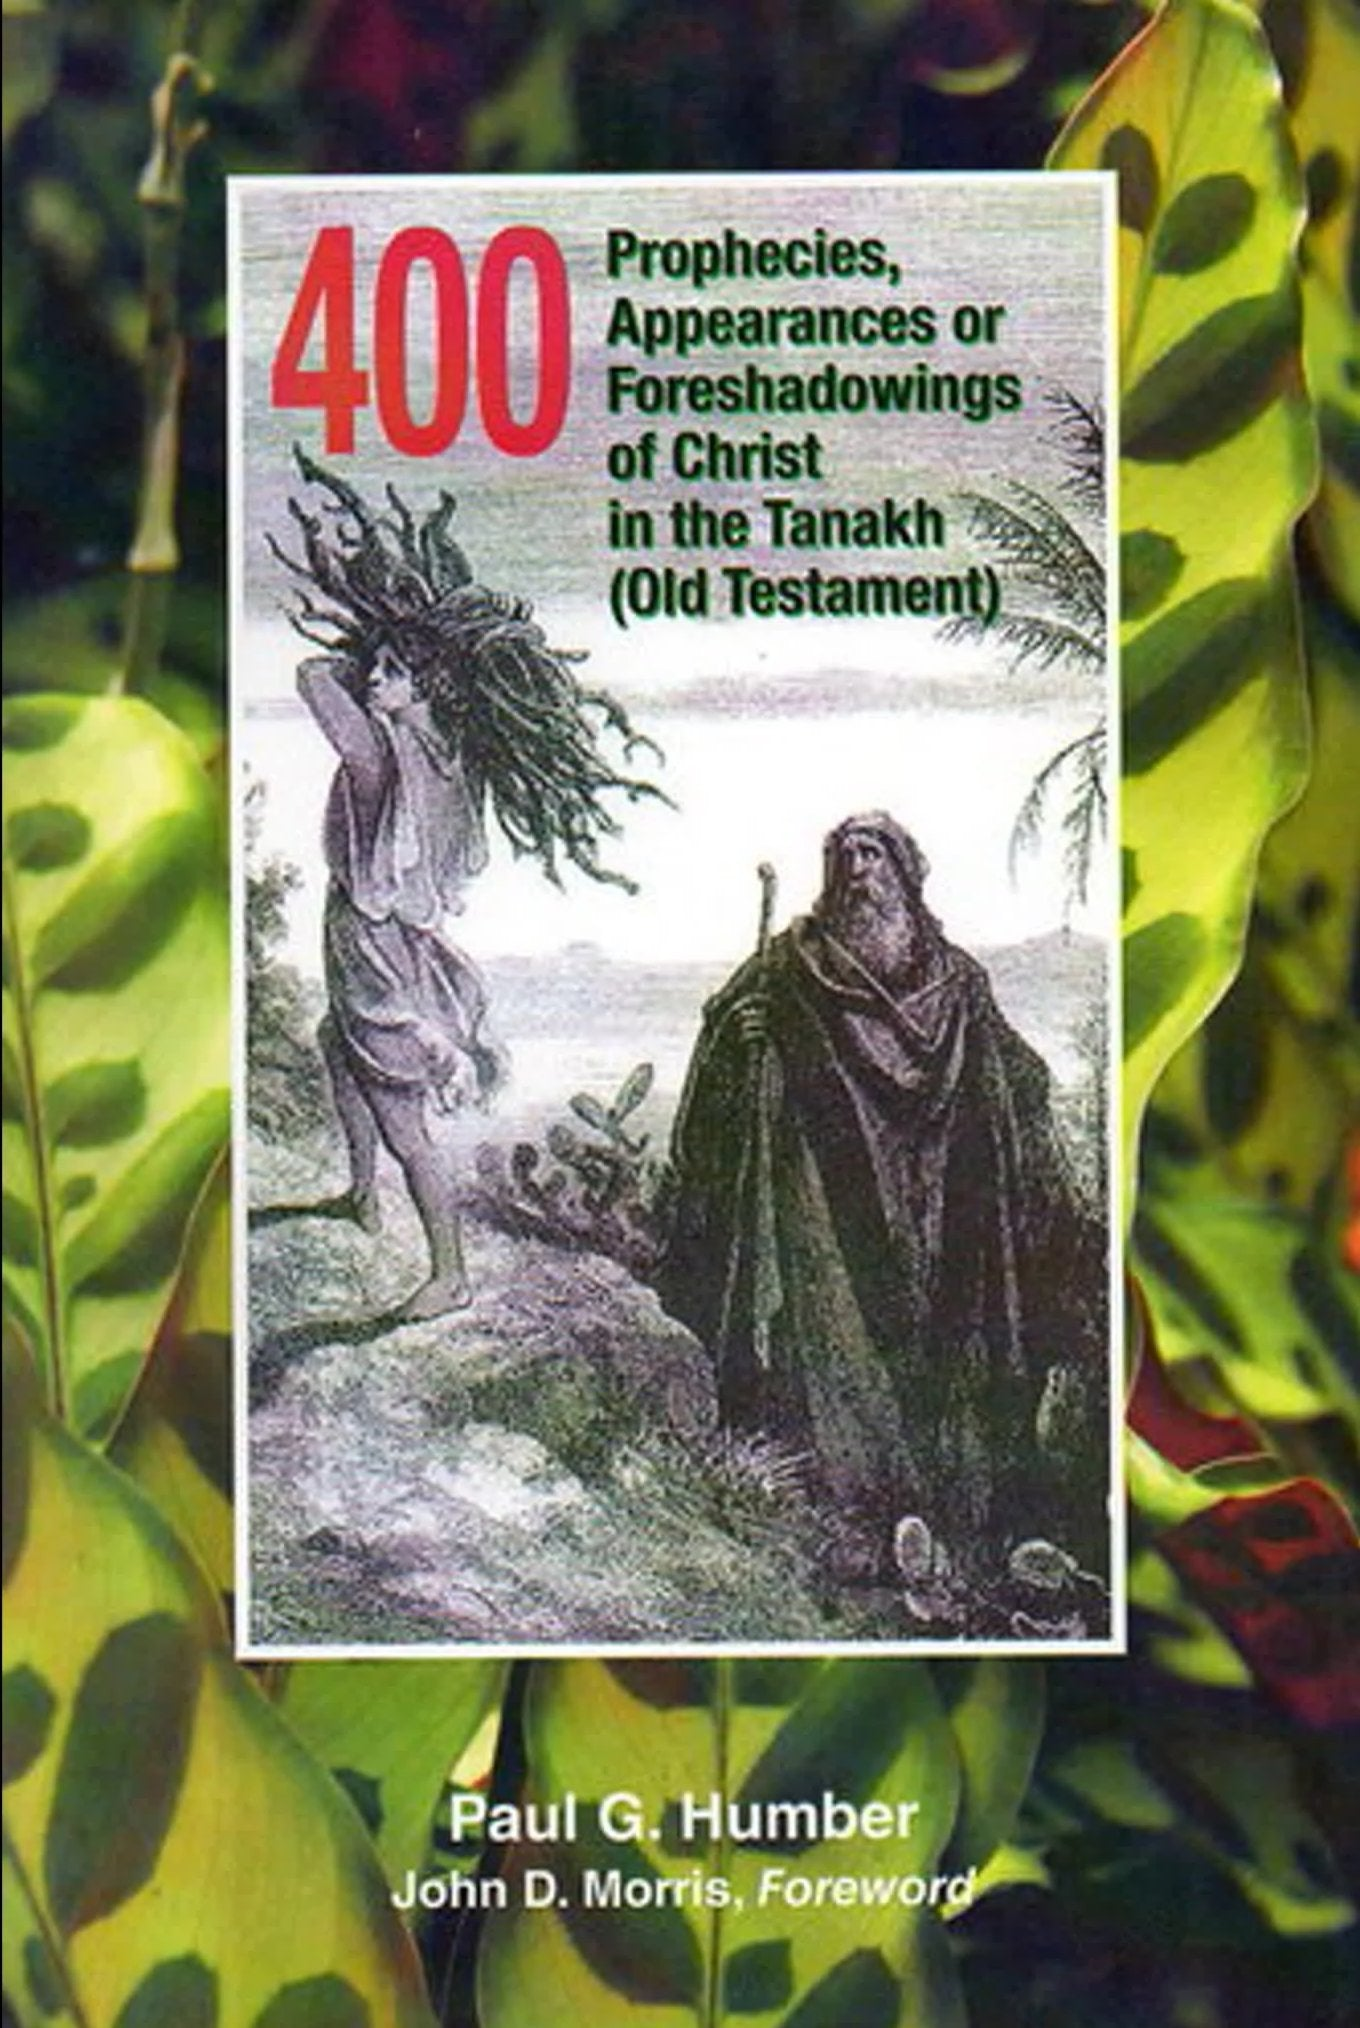 400 Prophecies, Appearances, or Foreshadowings of Christ in the Old Testament